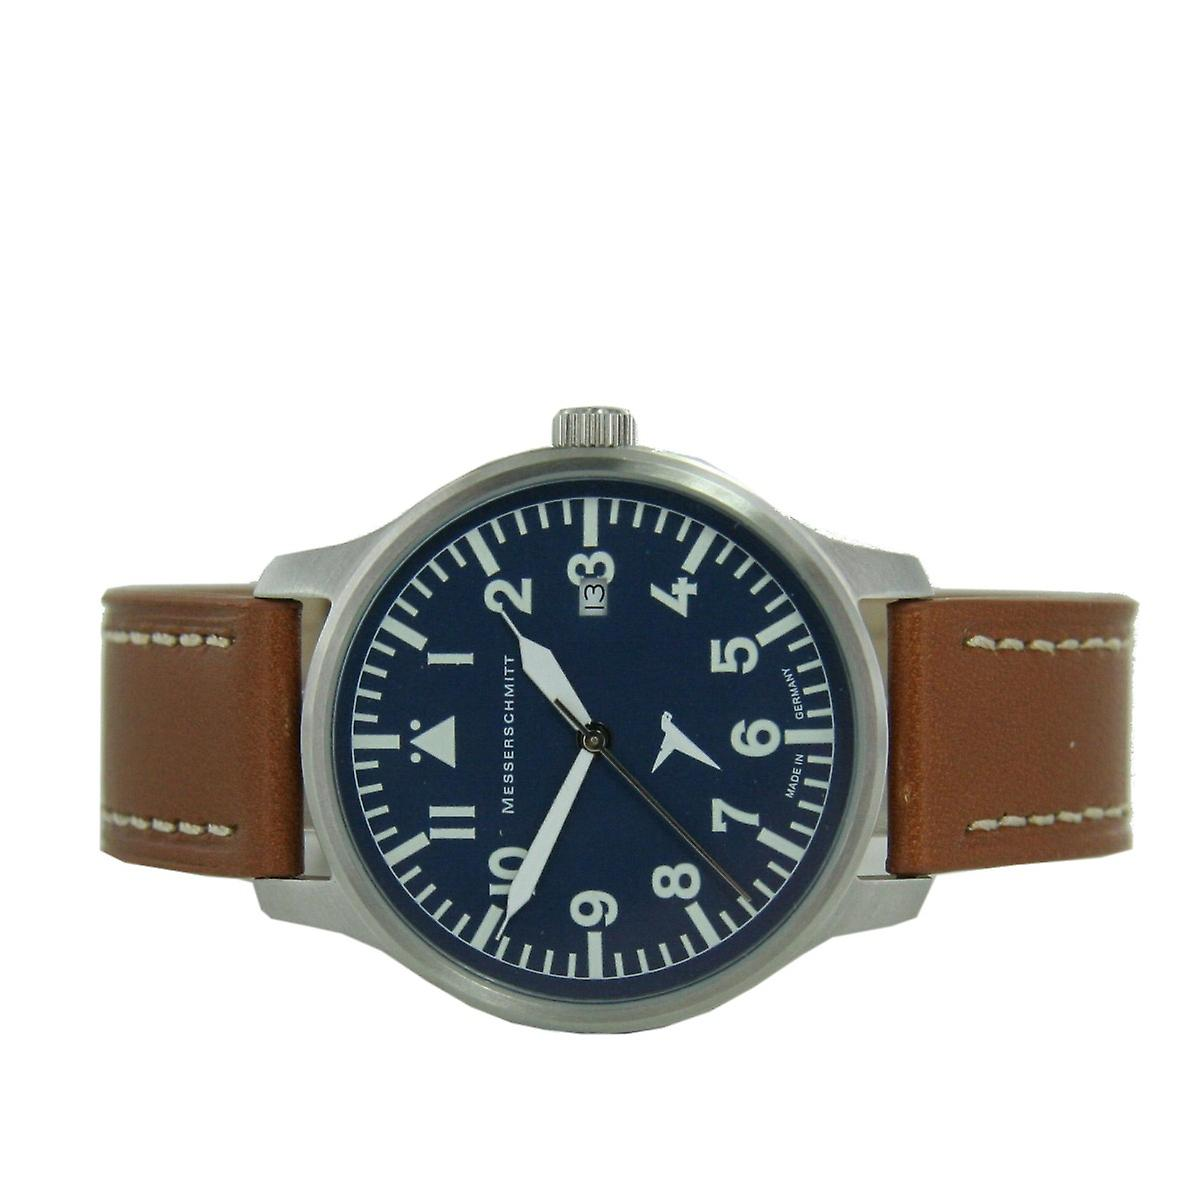 Aristo gentlemen Messerschmitt Fliegeruhr ME BLAUE42B Blau watch